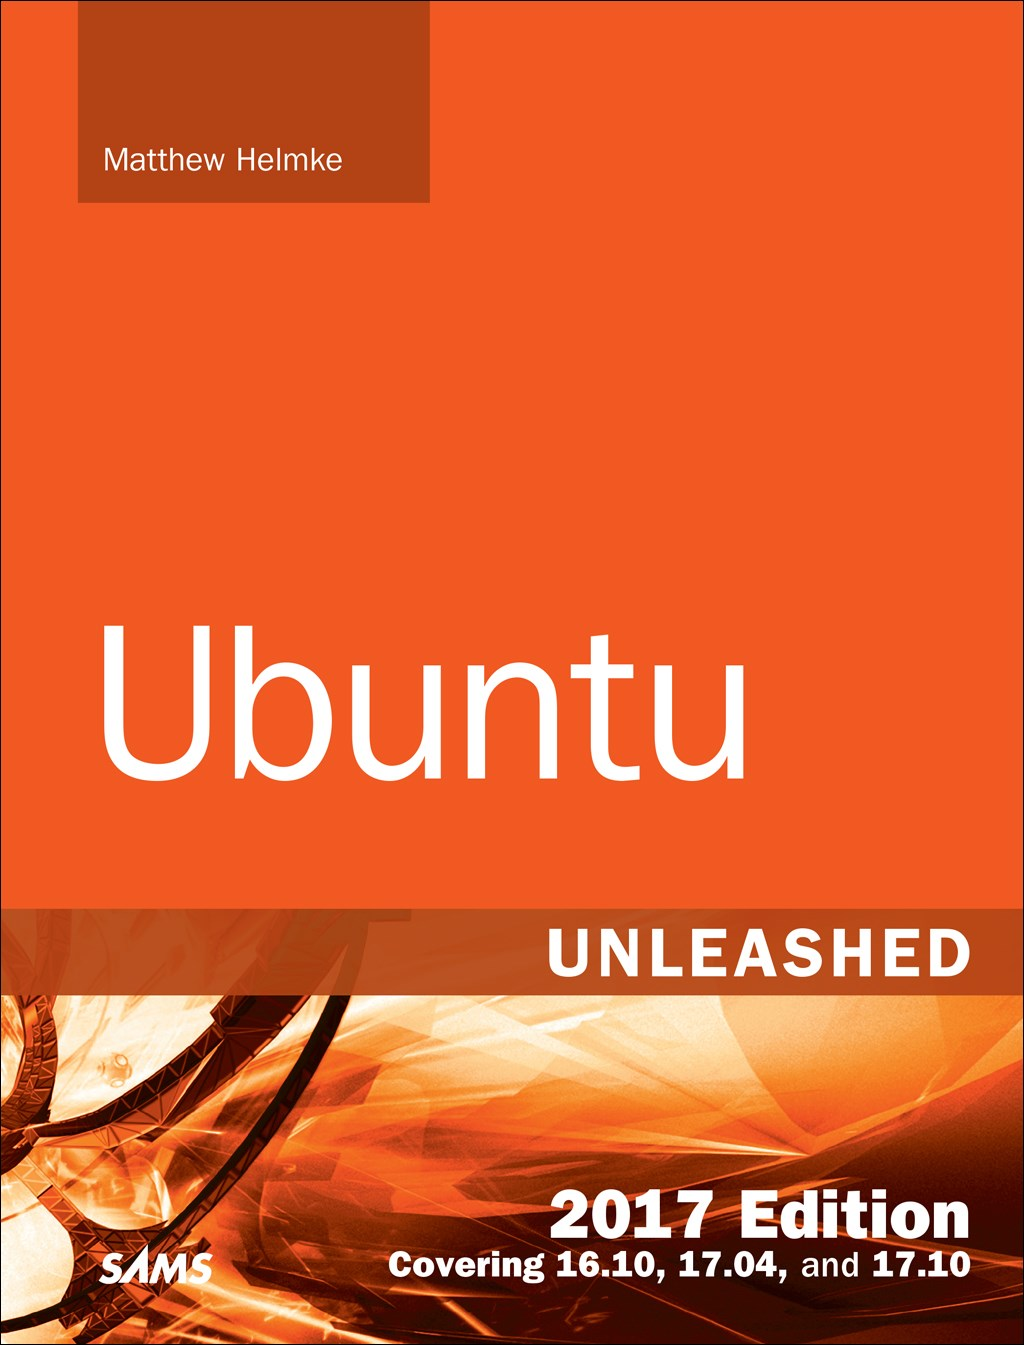 Ubuntu Unleashed 2017 Edition (Includes Content Update Program): Covering 16.10, 17.04, 17.10, 12th Edition